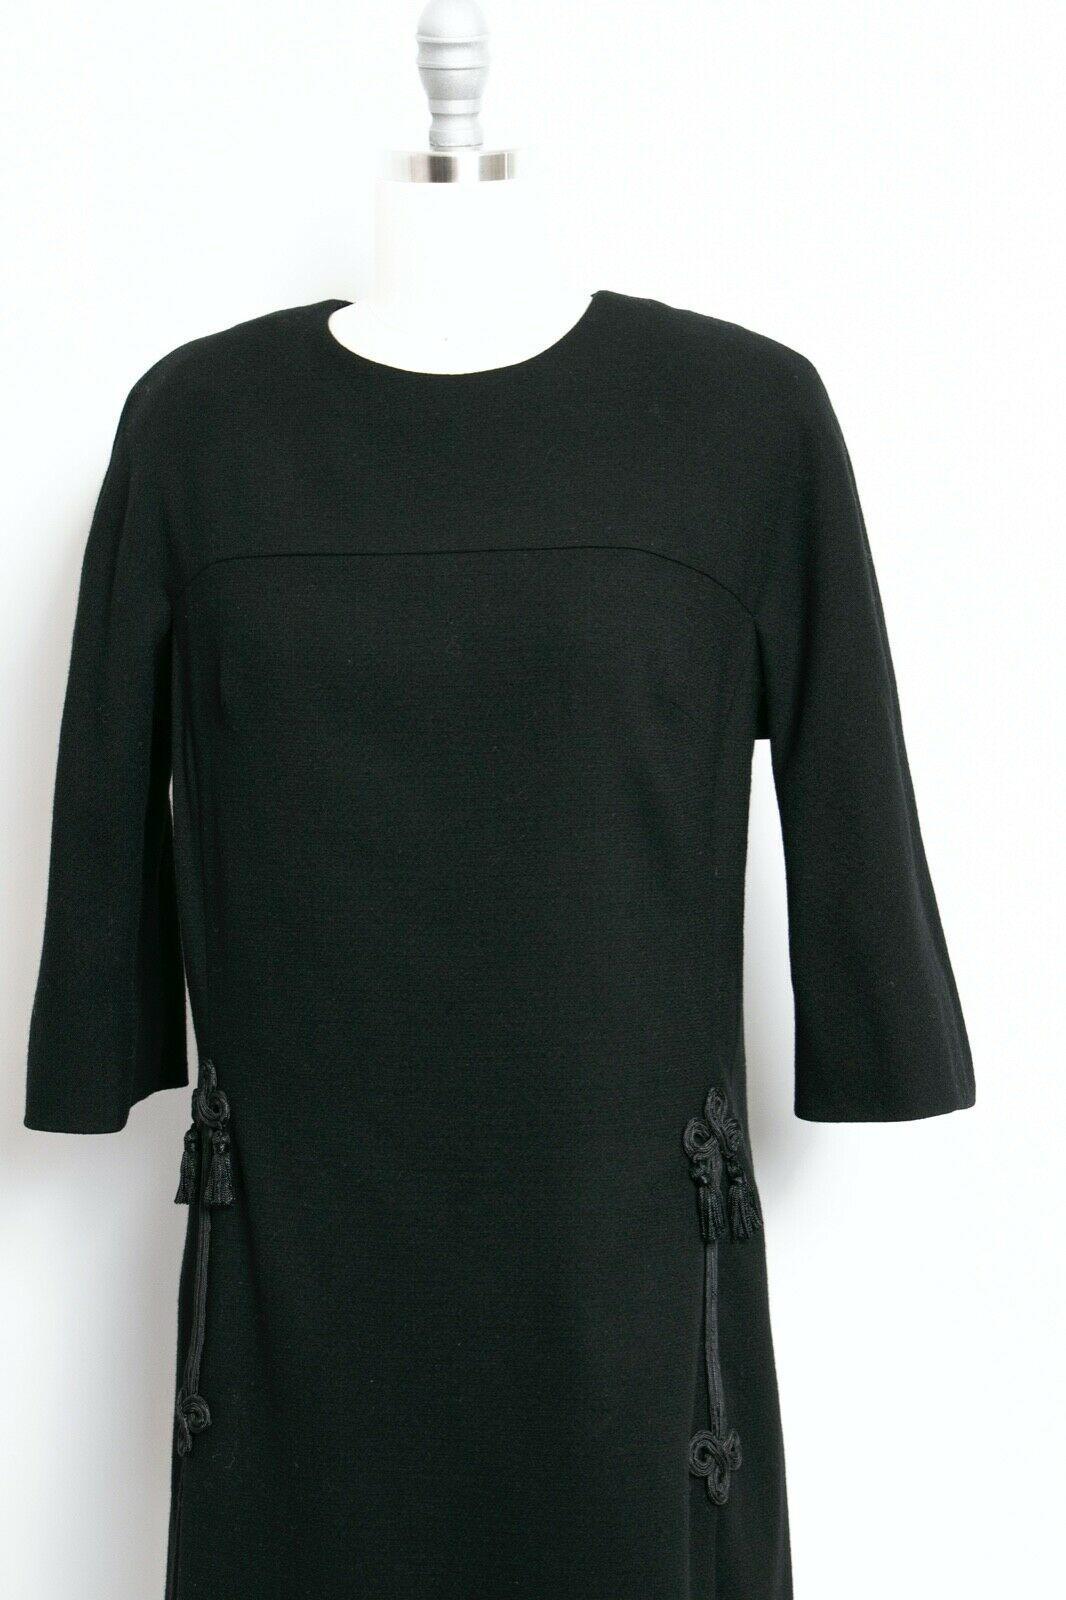 HARVEY BERIN 1960s Dress Black Wool Large - image 4